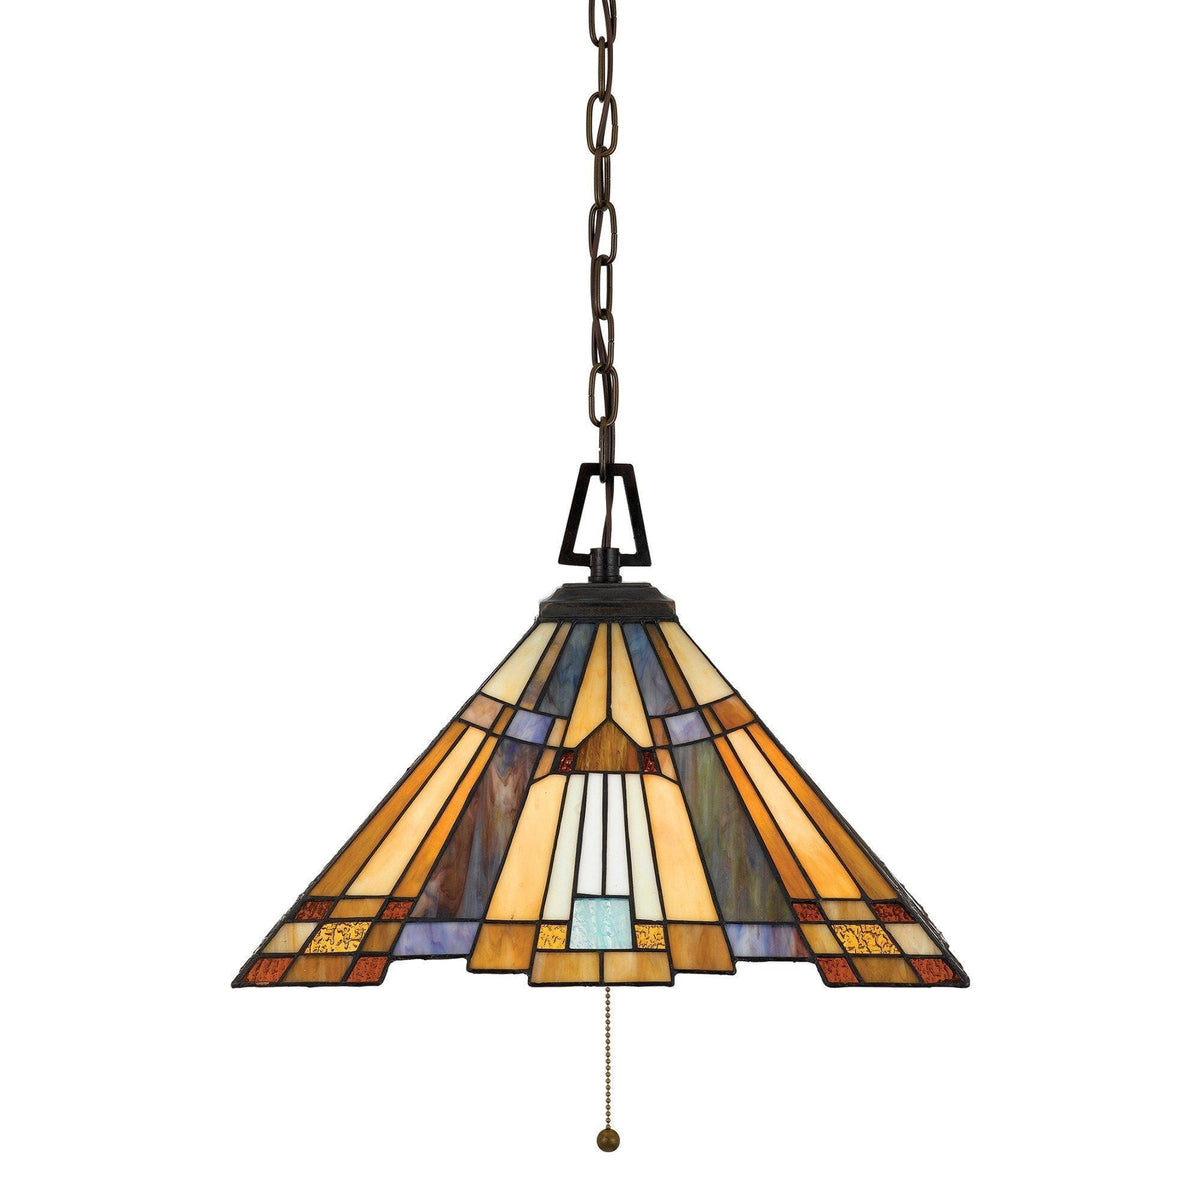 Tiffany Ceiling Pendant Lights - Quoizel Tiffany Inglenook Ceiling Pendant Light QZ/INGLENOOK/P/A